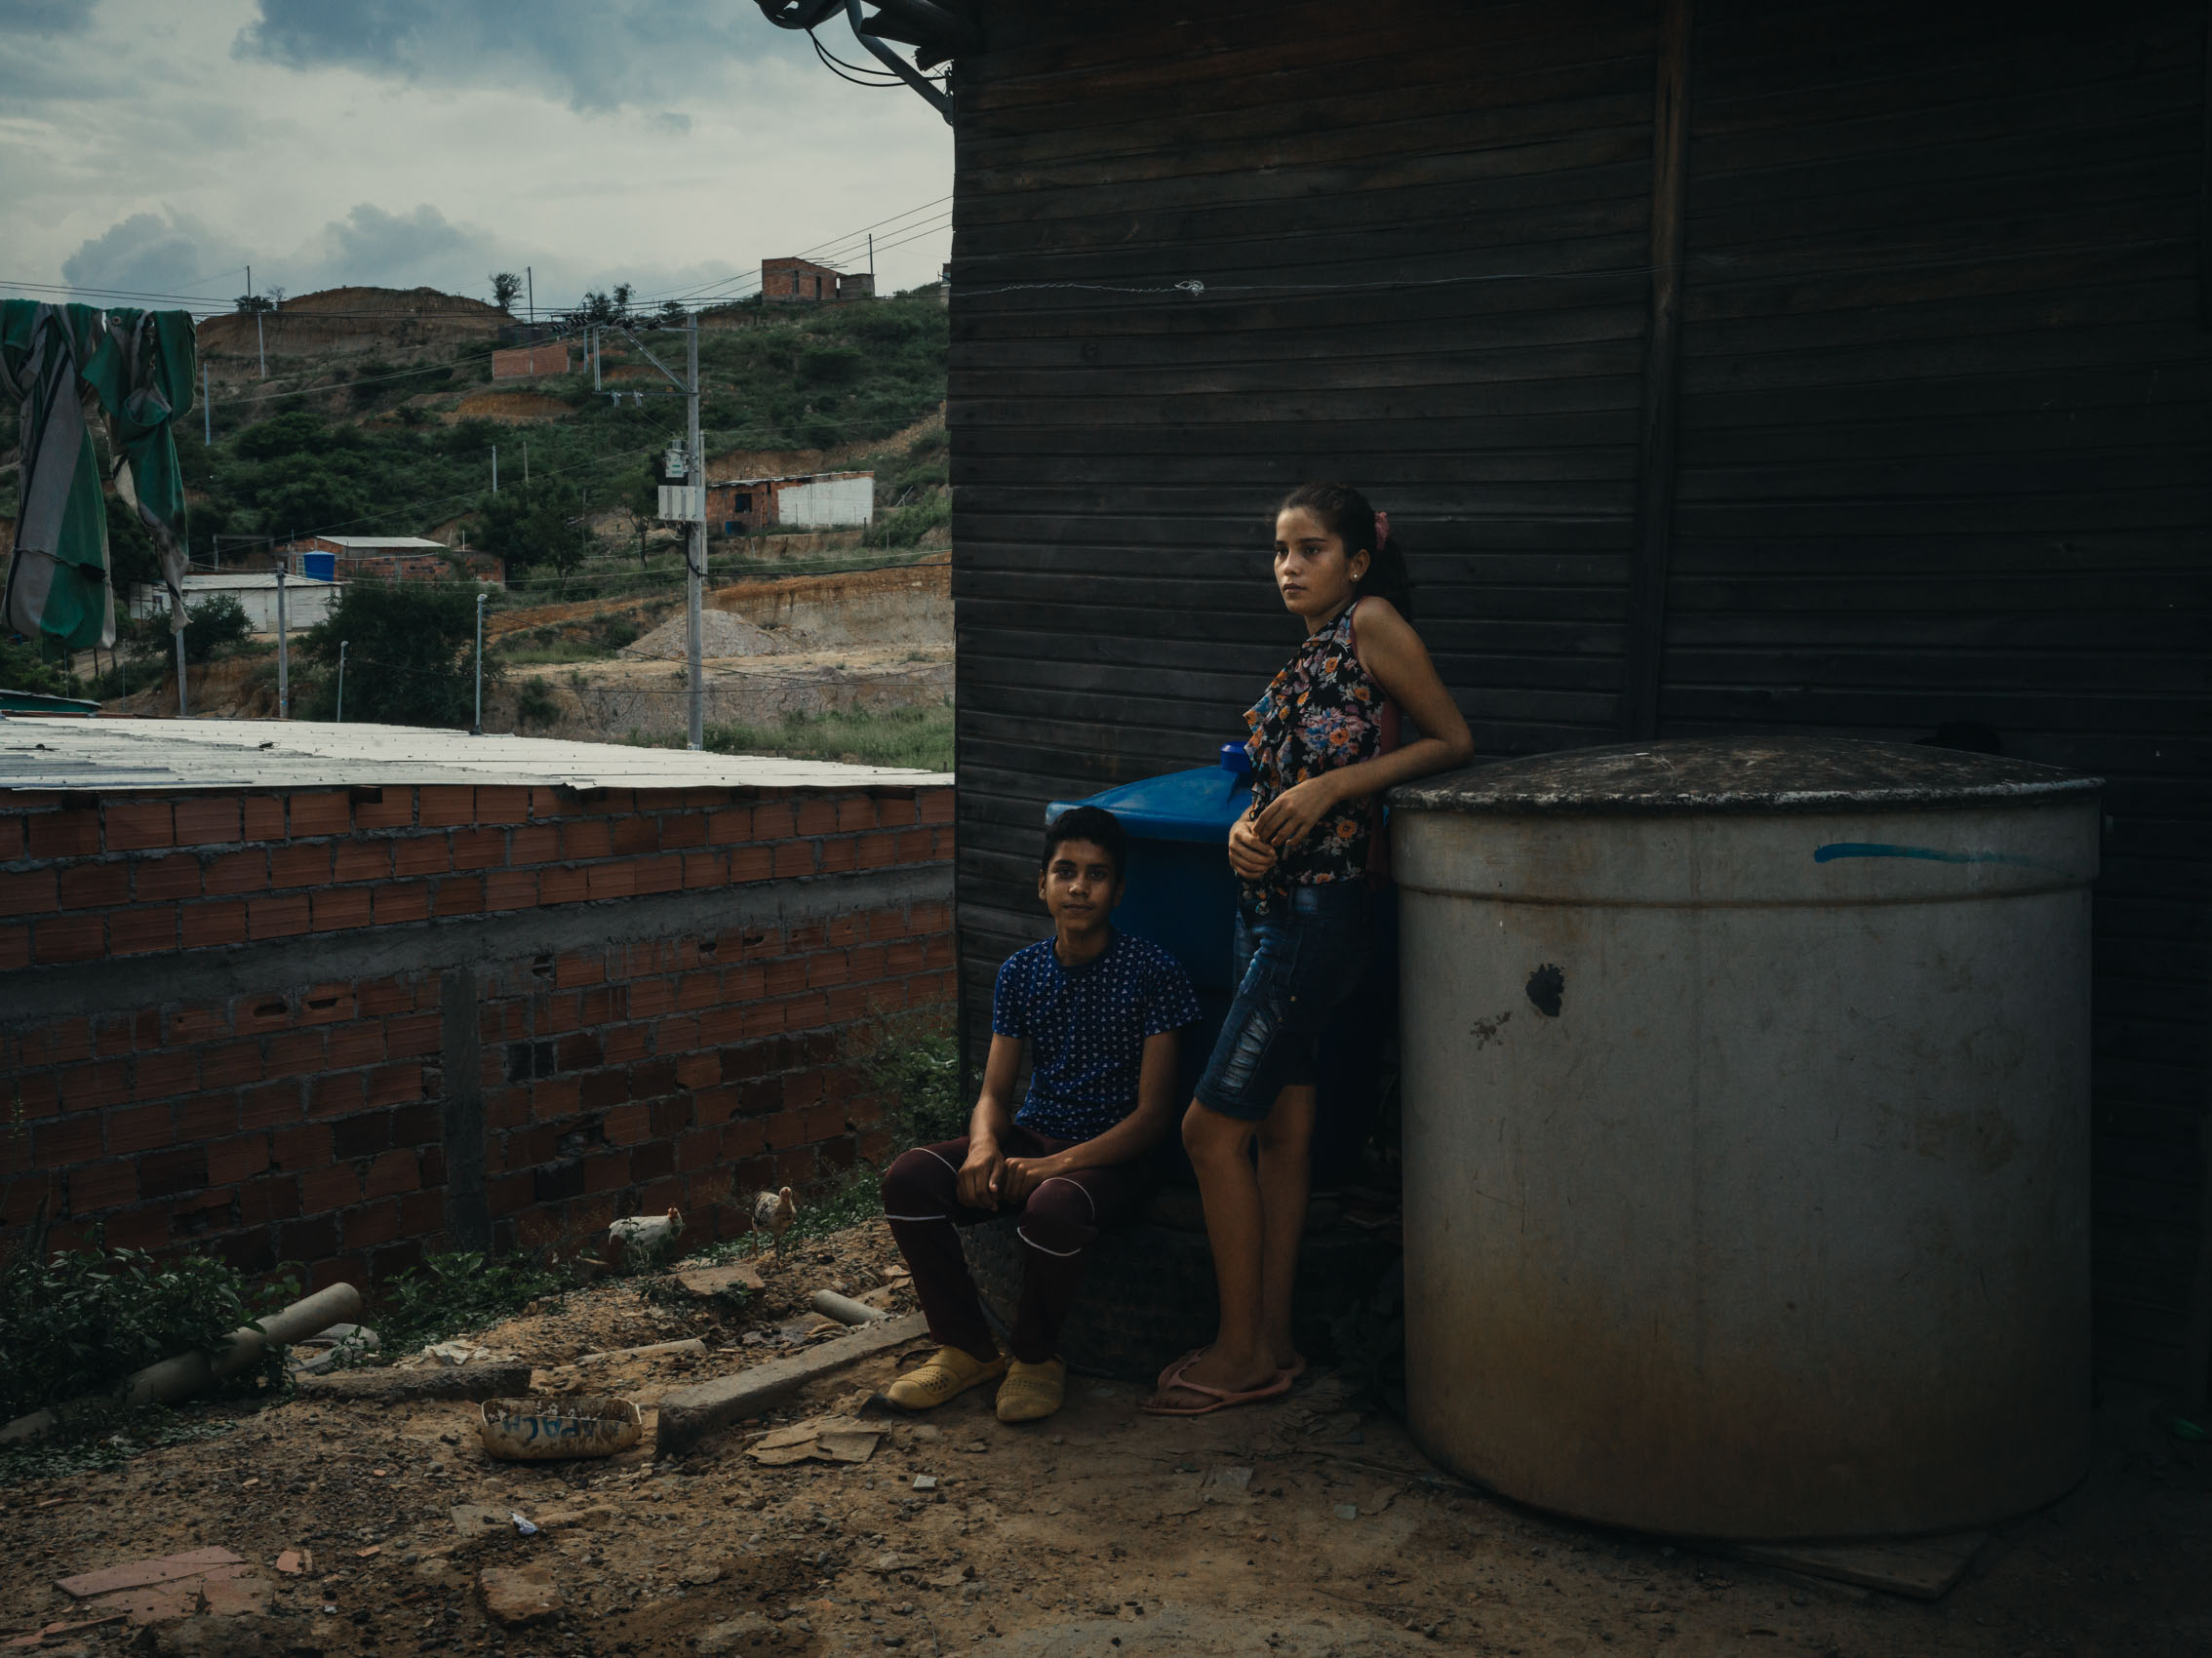 portrait of Venezuelan refugees